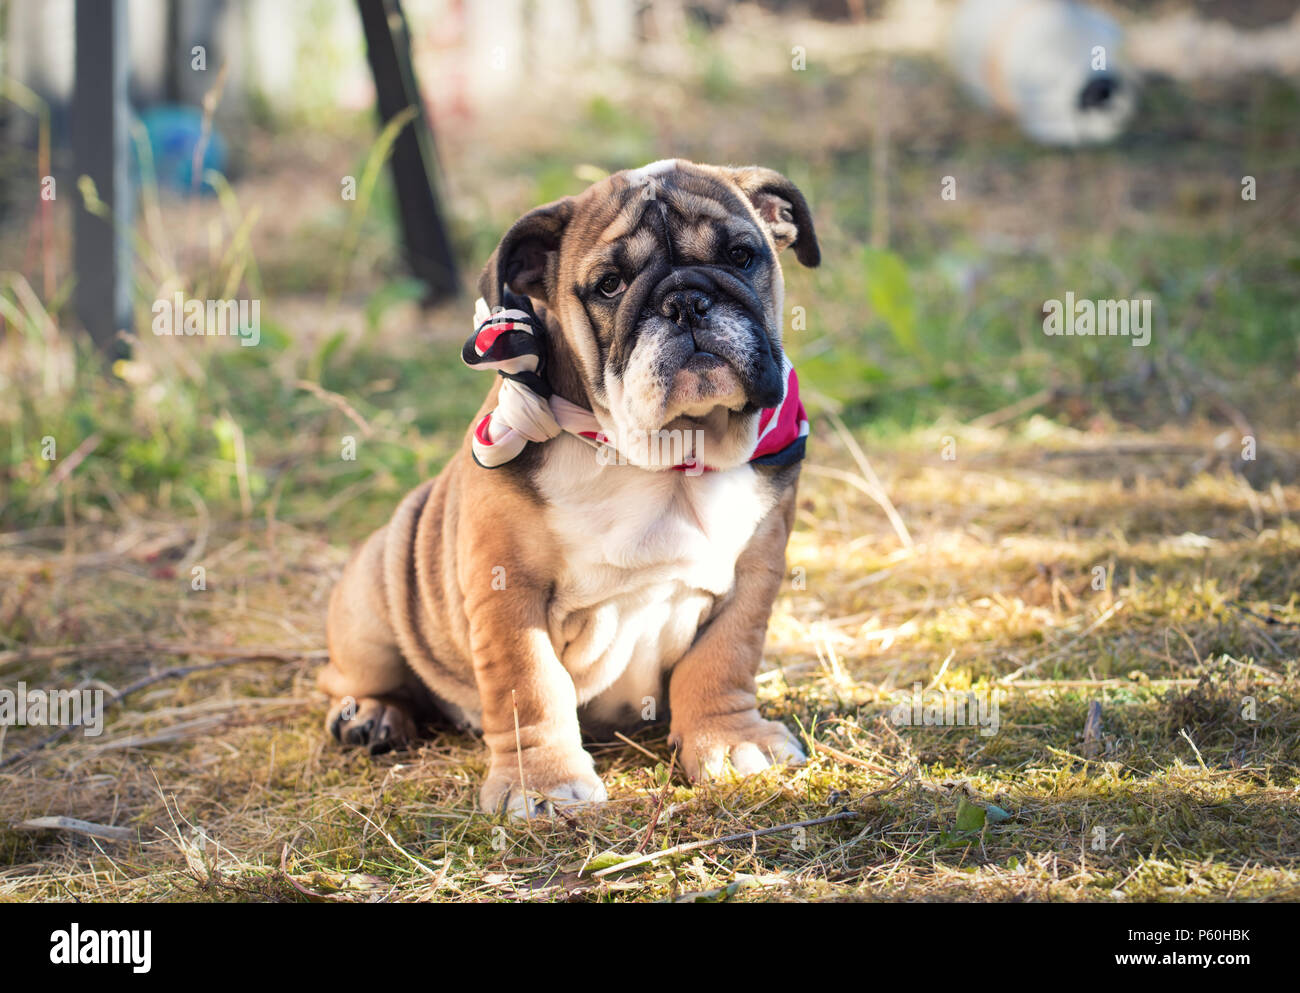 Red And Blac English Bulldog Puppy 3 Months Old Sitting On The Grass And Wearing Red And Black Scarf Stock Photo Alamy